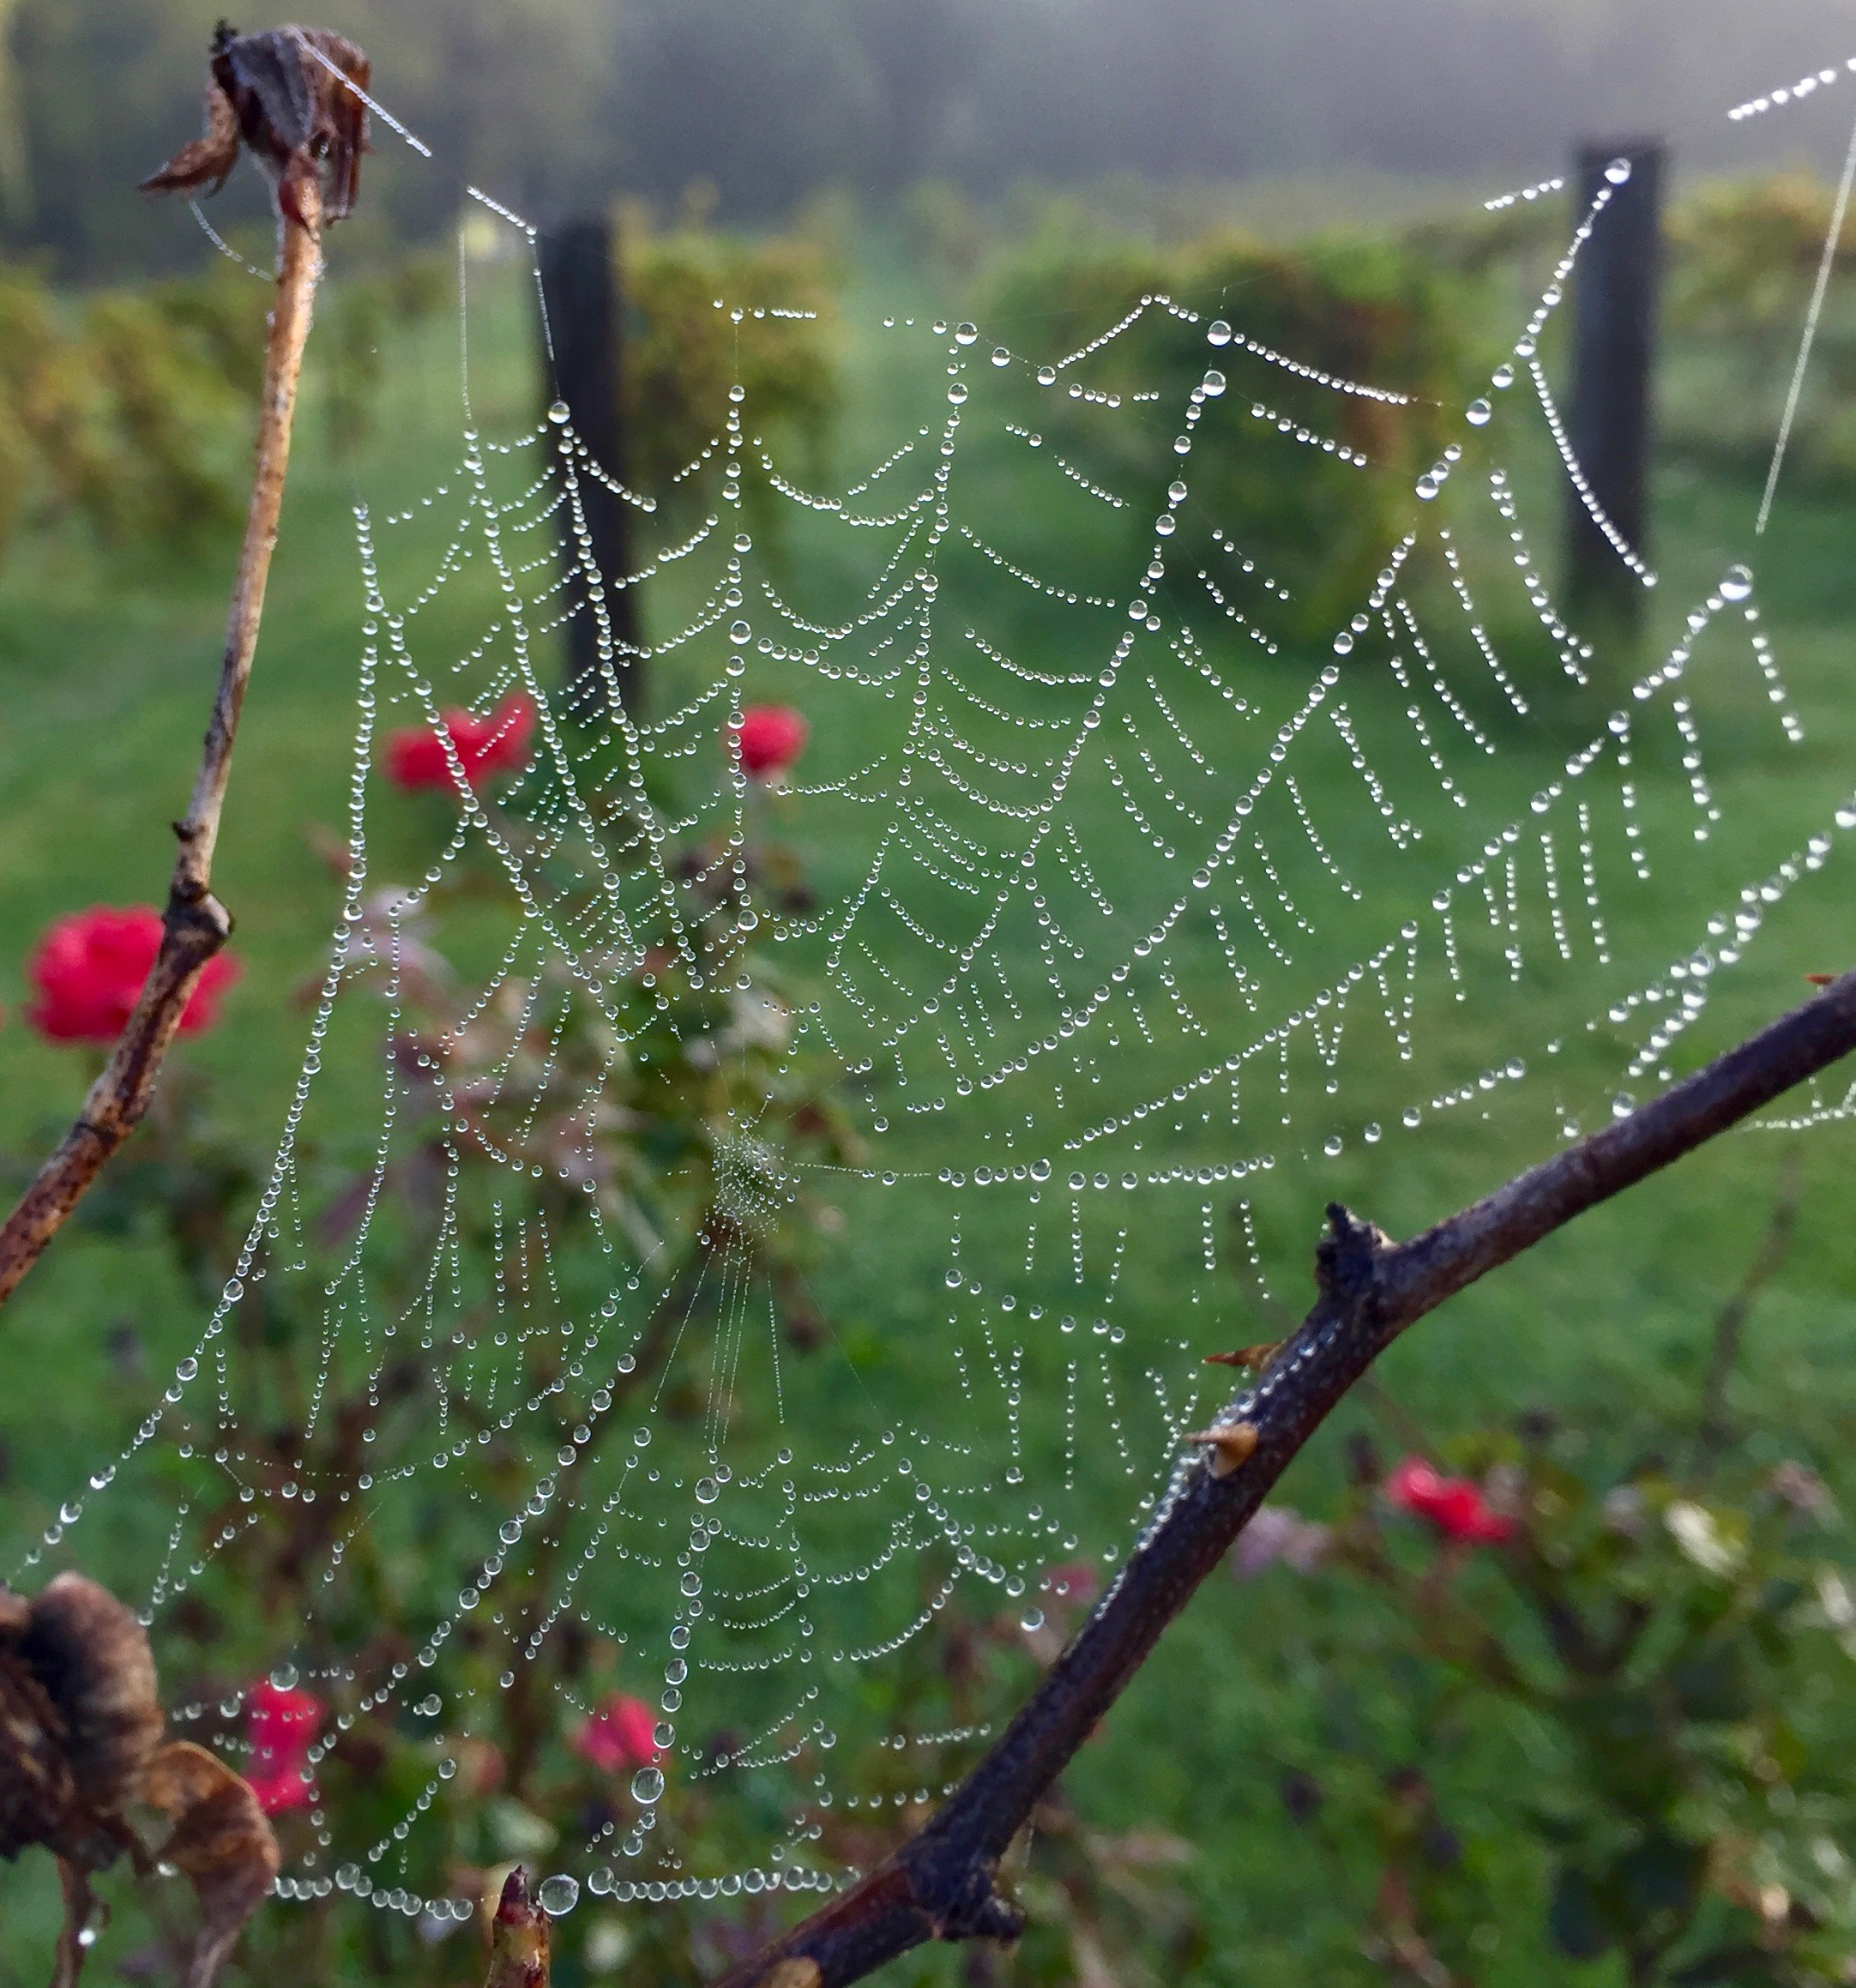 Spiderweb in dew with Mist